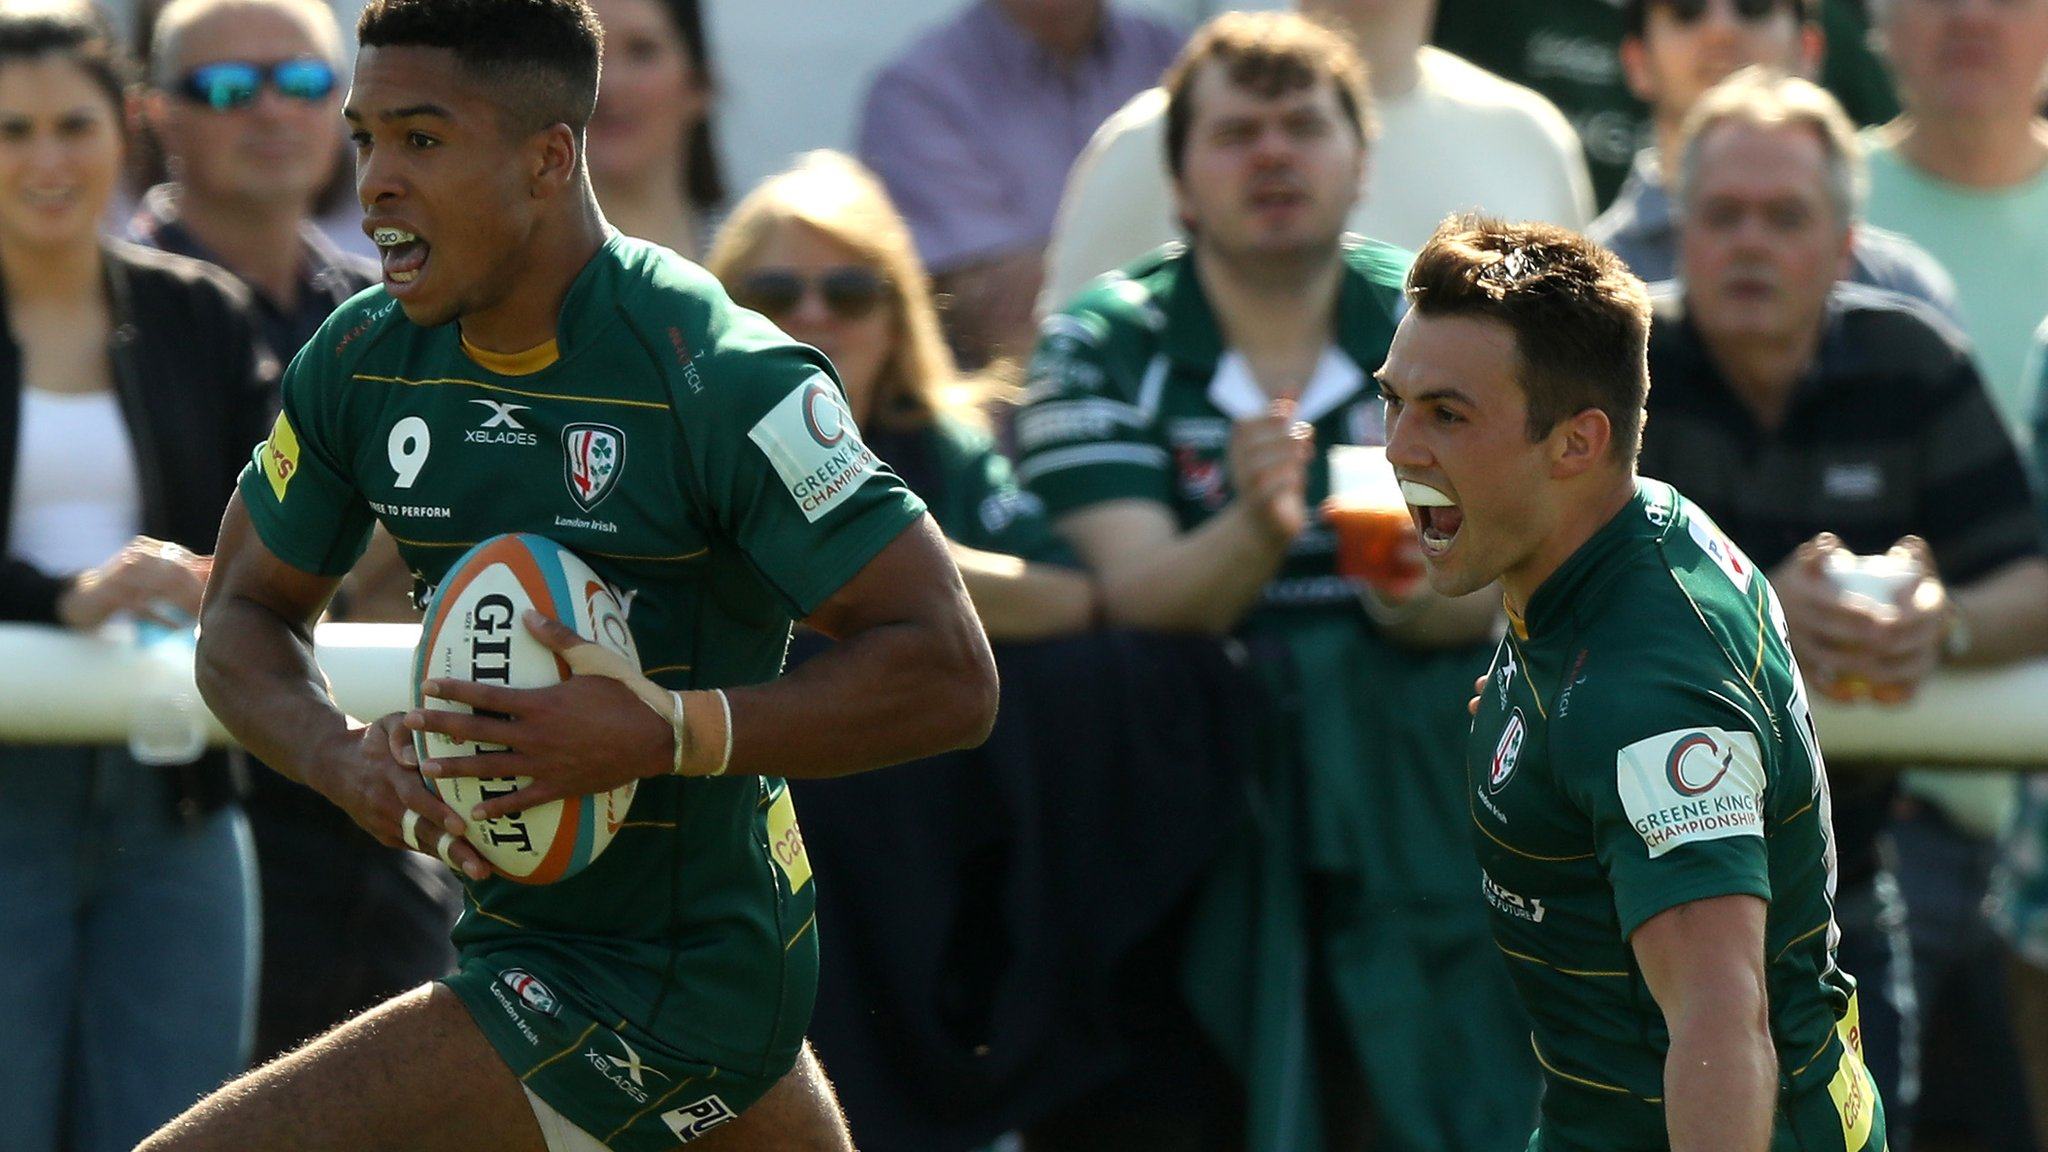 London Irish: Club secure Championship title and promotion with win at Richmond